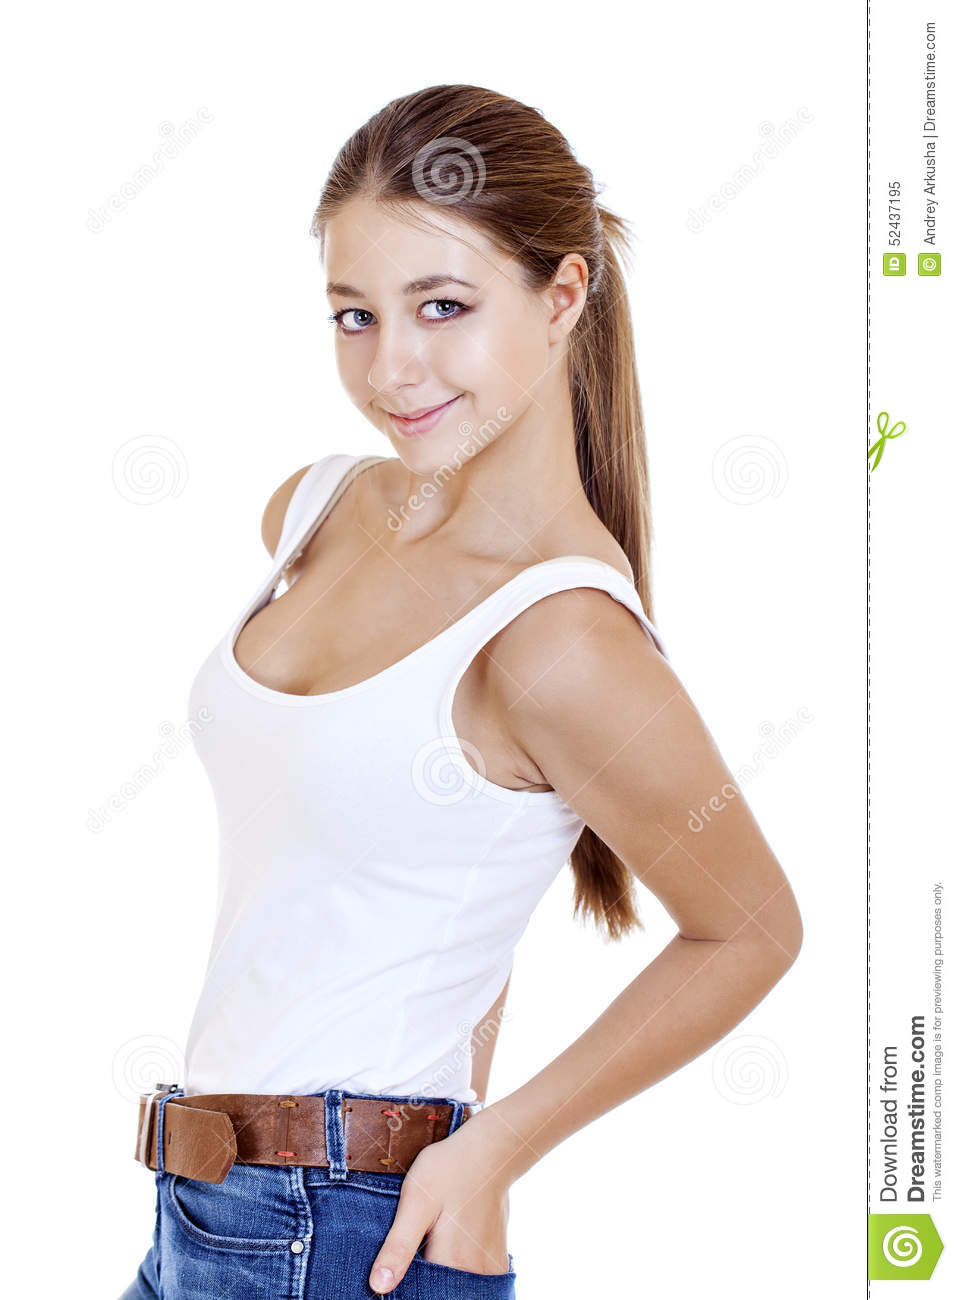 Ideal teen girls in denim shorts messages